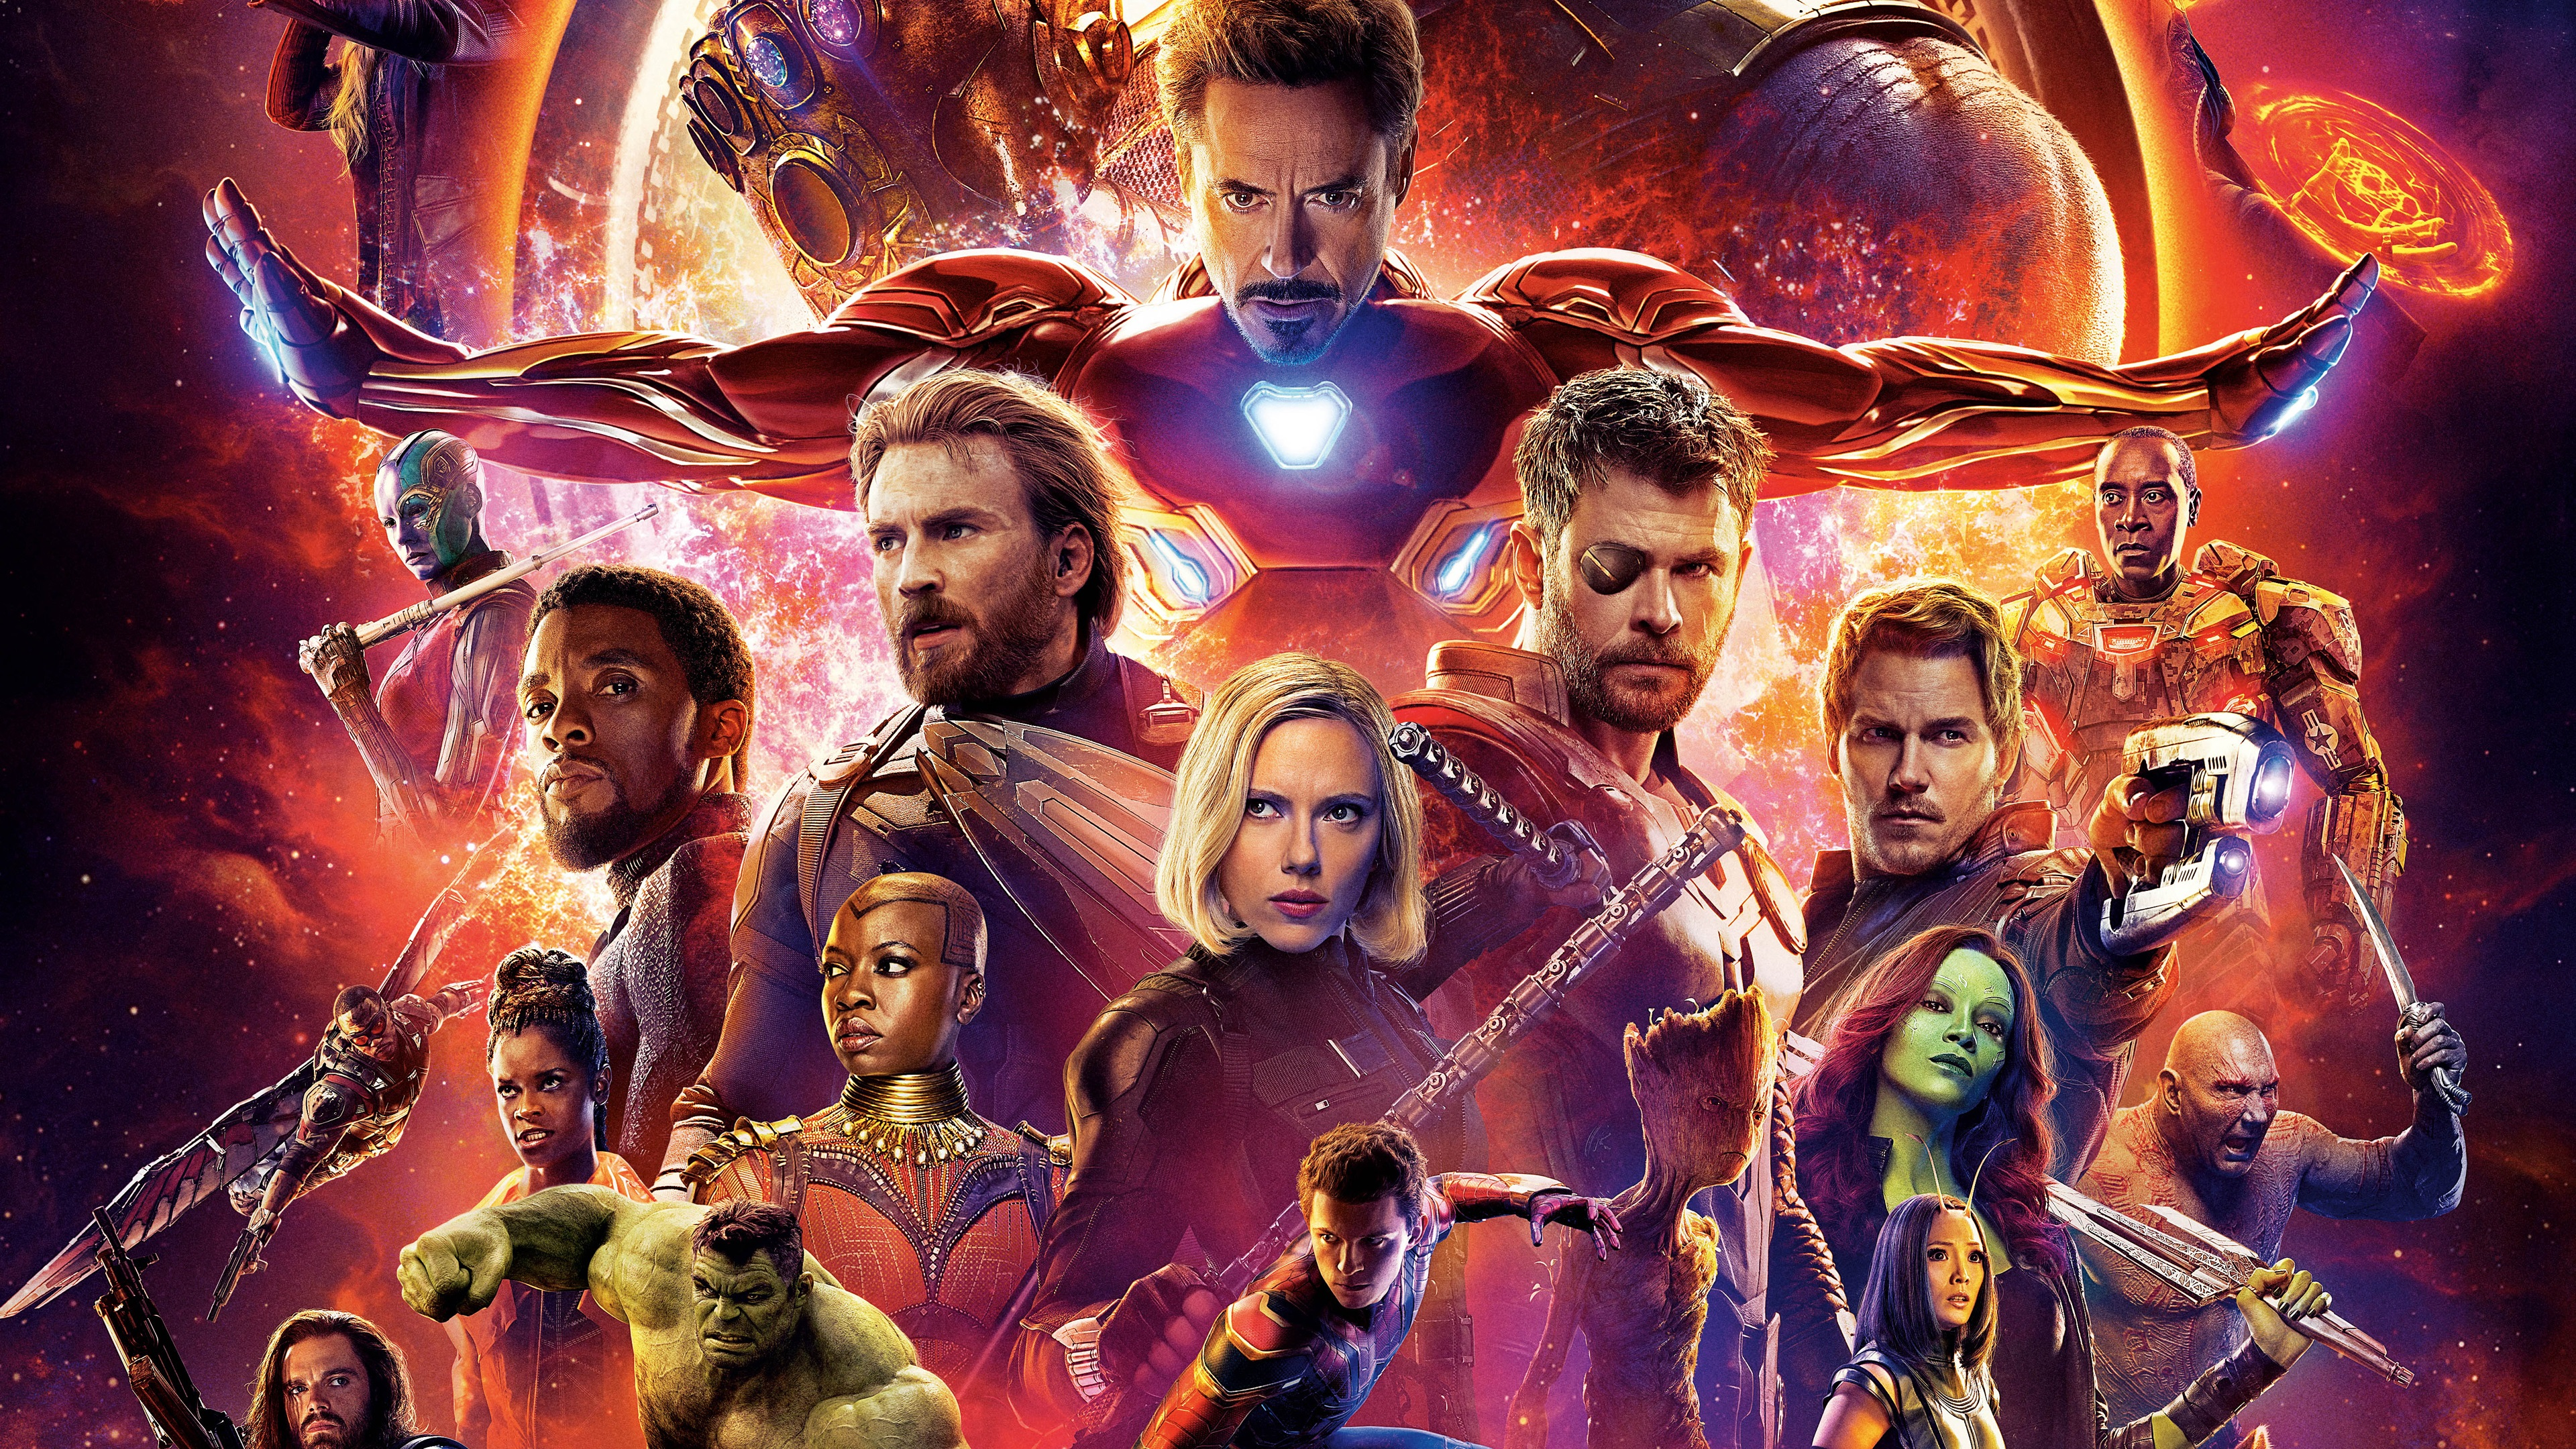 Wallpaper Superheroes Avengers Infinity War 2018 3840x2160 Uhd 4k